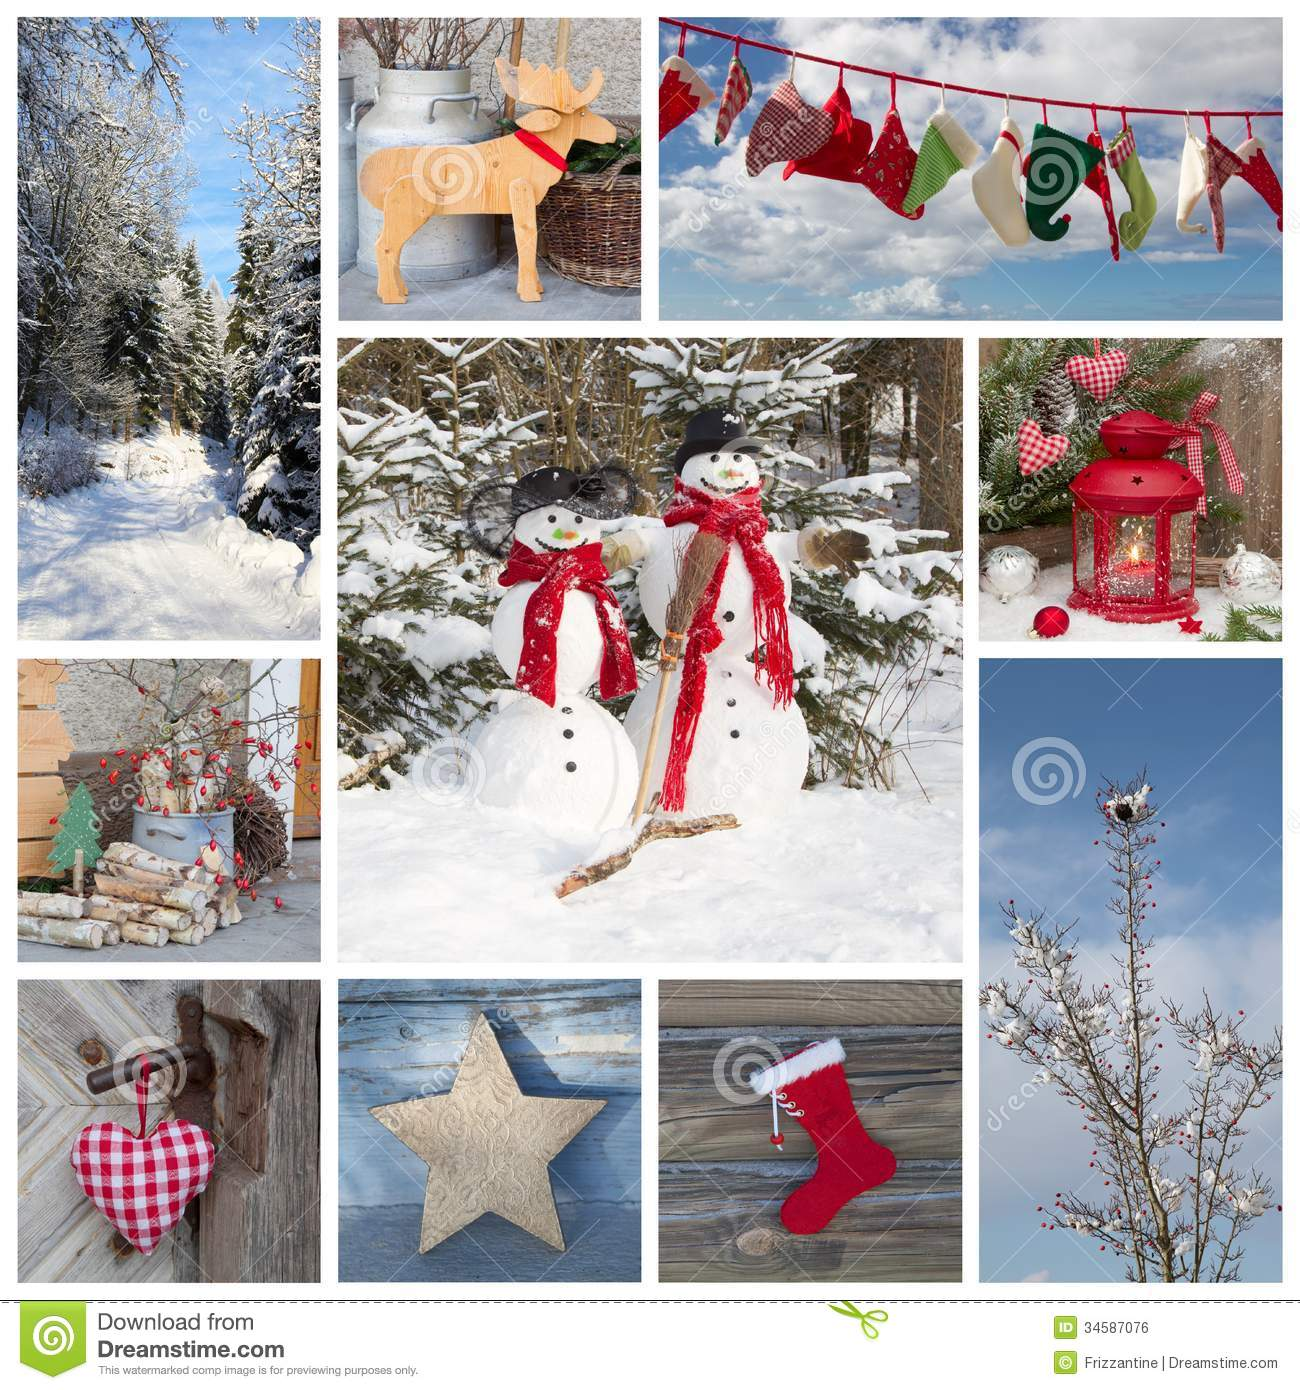 Homemade country christmas decorations - Outdoor Christmas Decoration In Country Style In Blue And Red For A